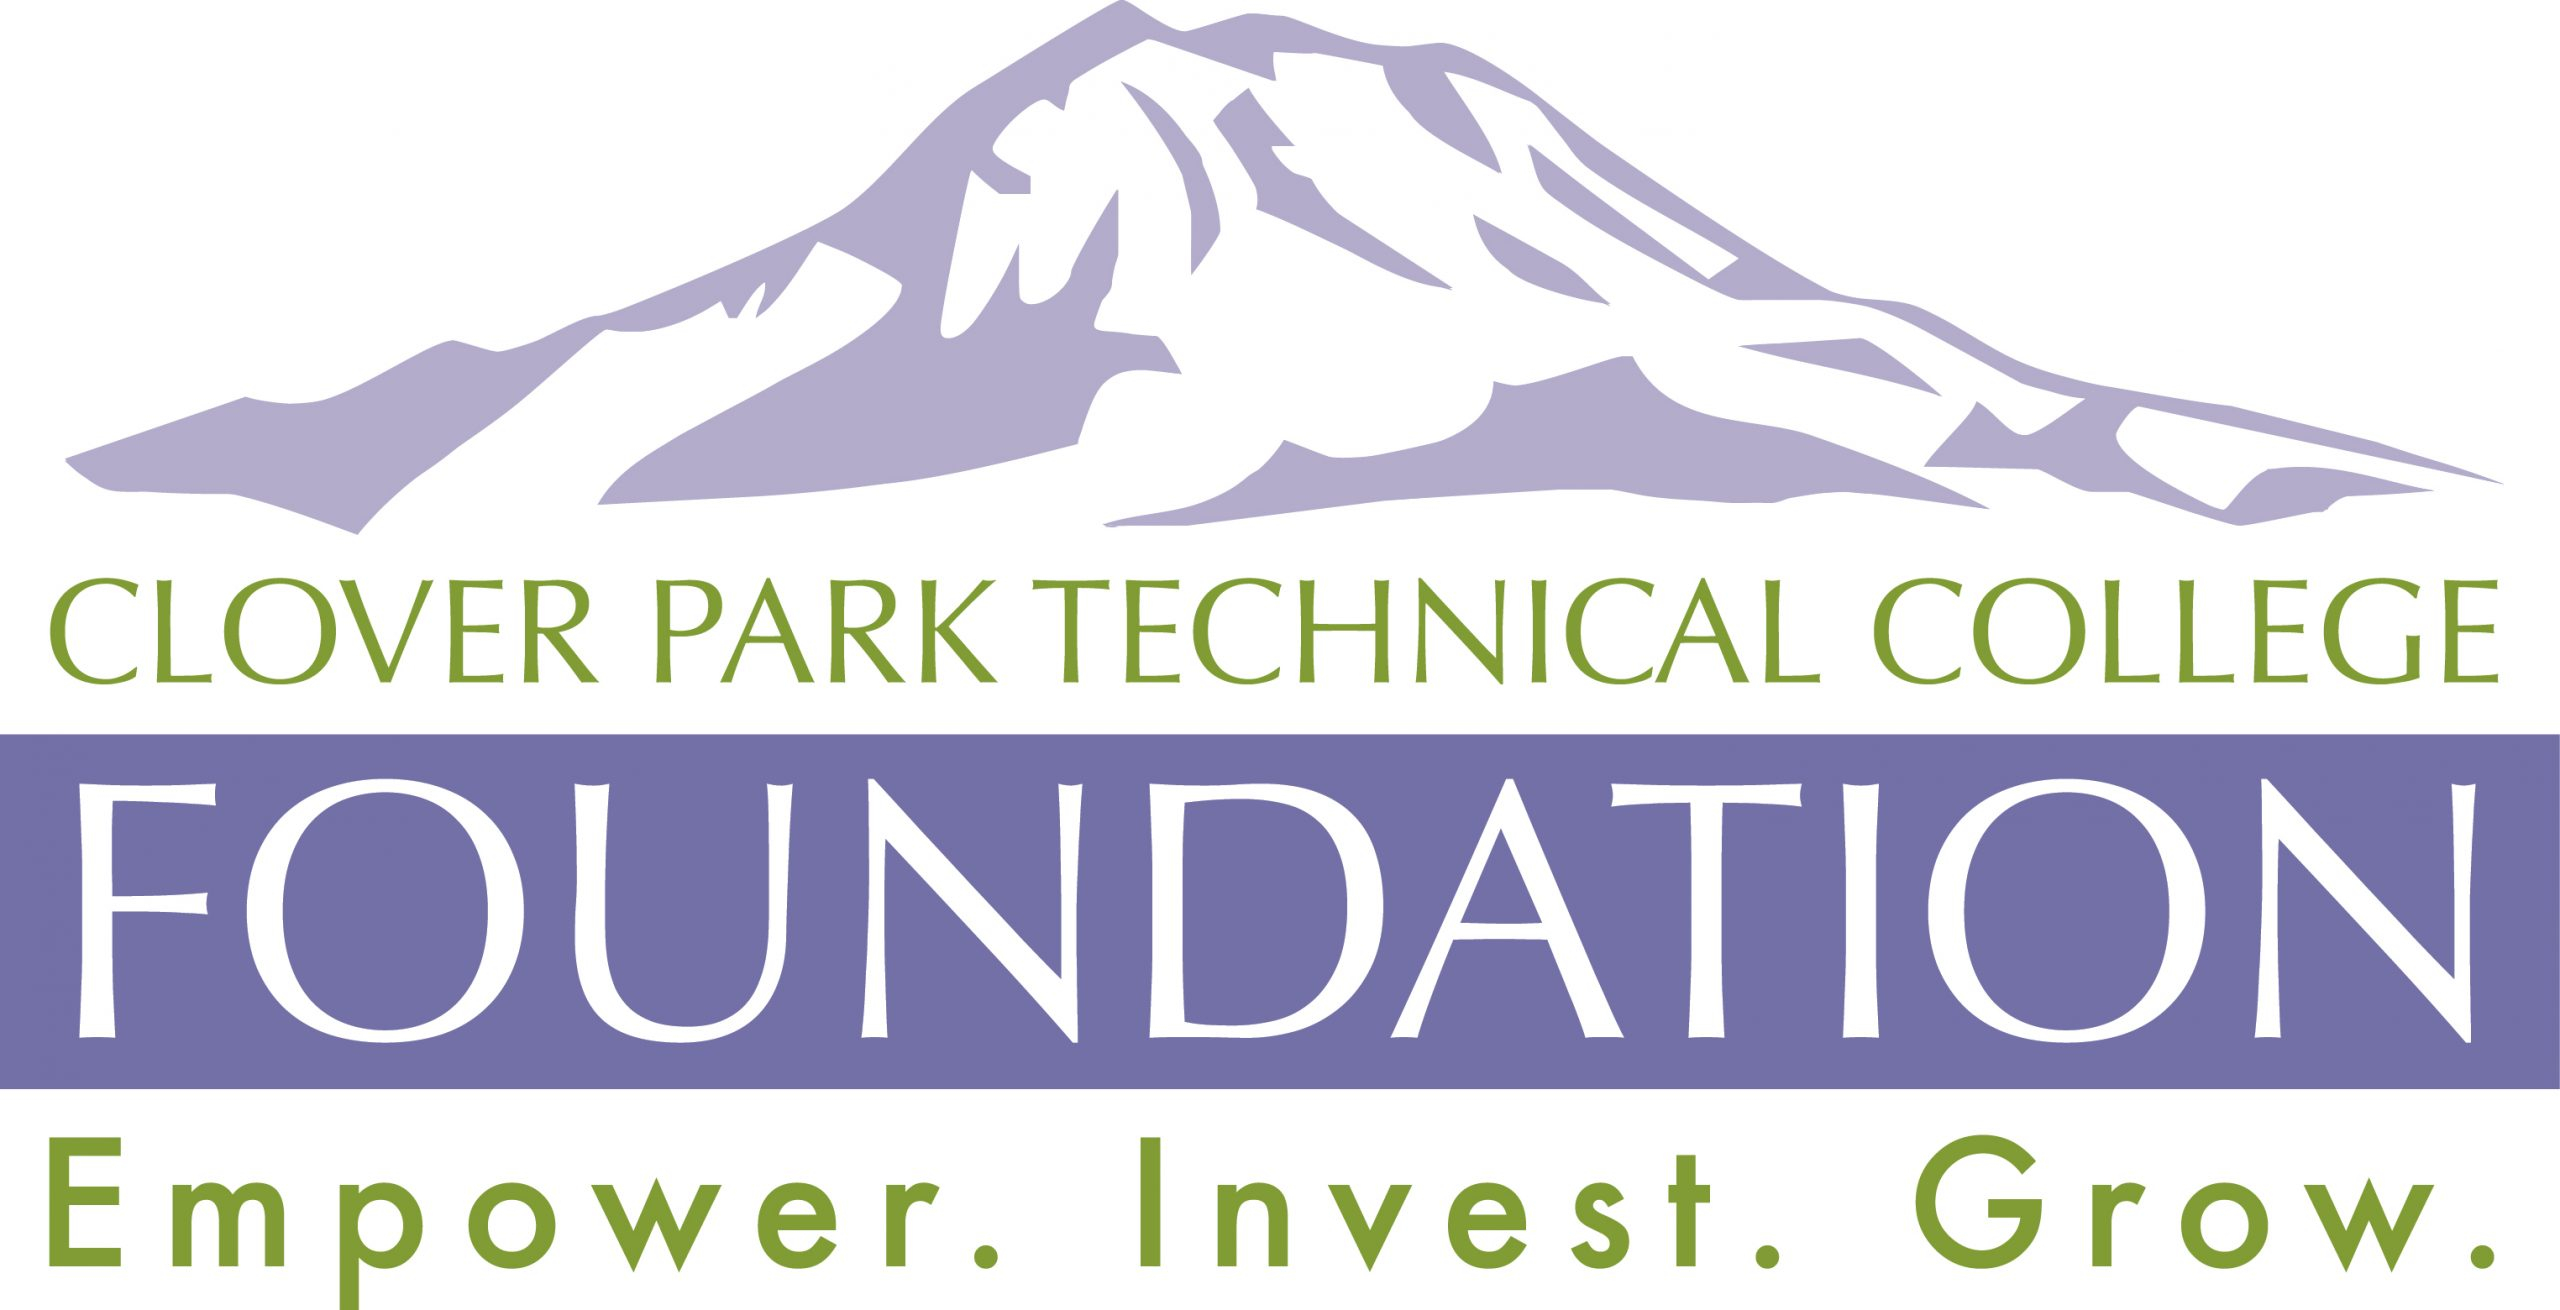 Ways To Give | Cptc Foundation In Clover Park Technical College Calendar